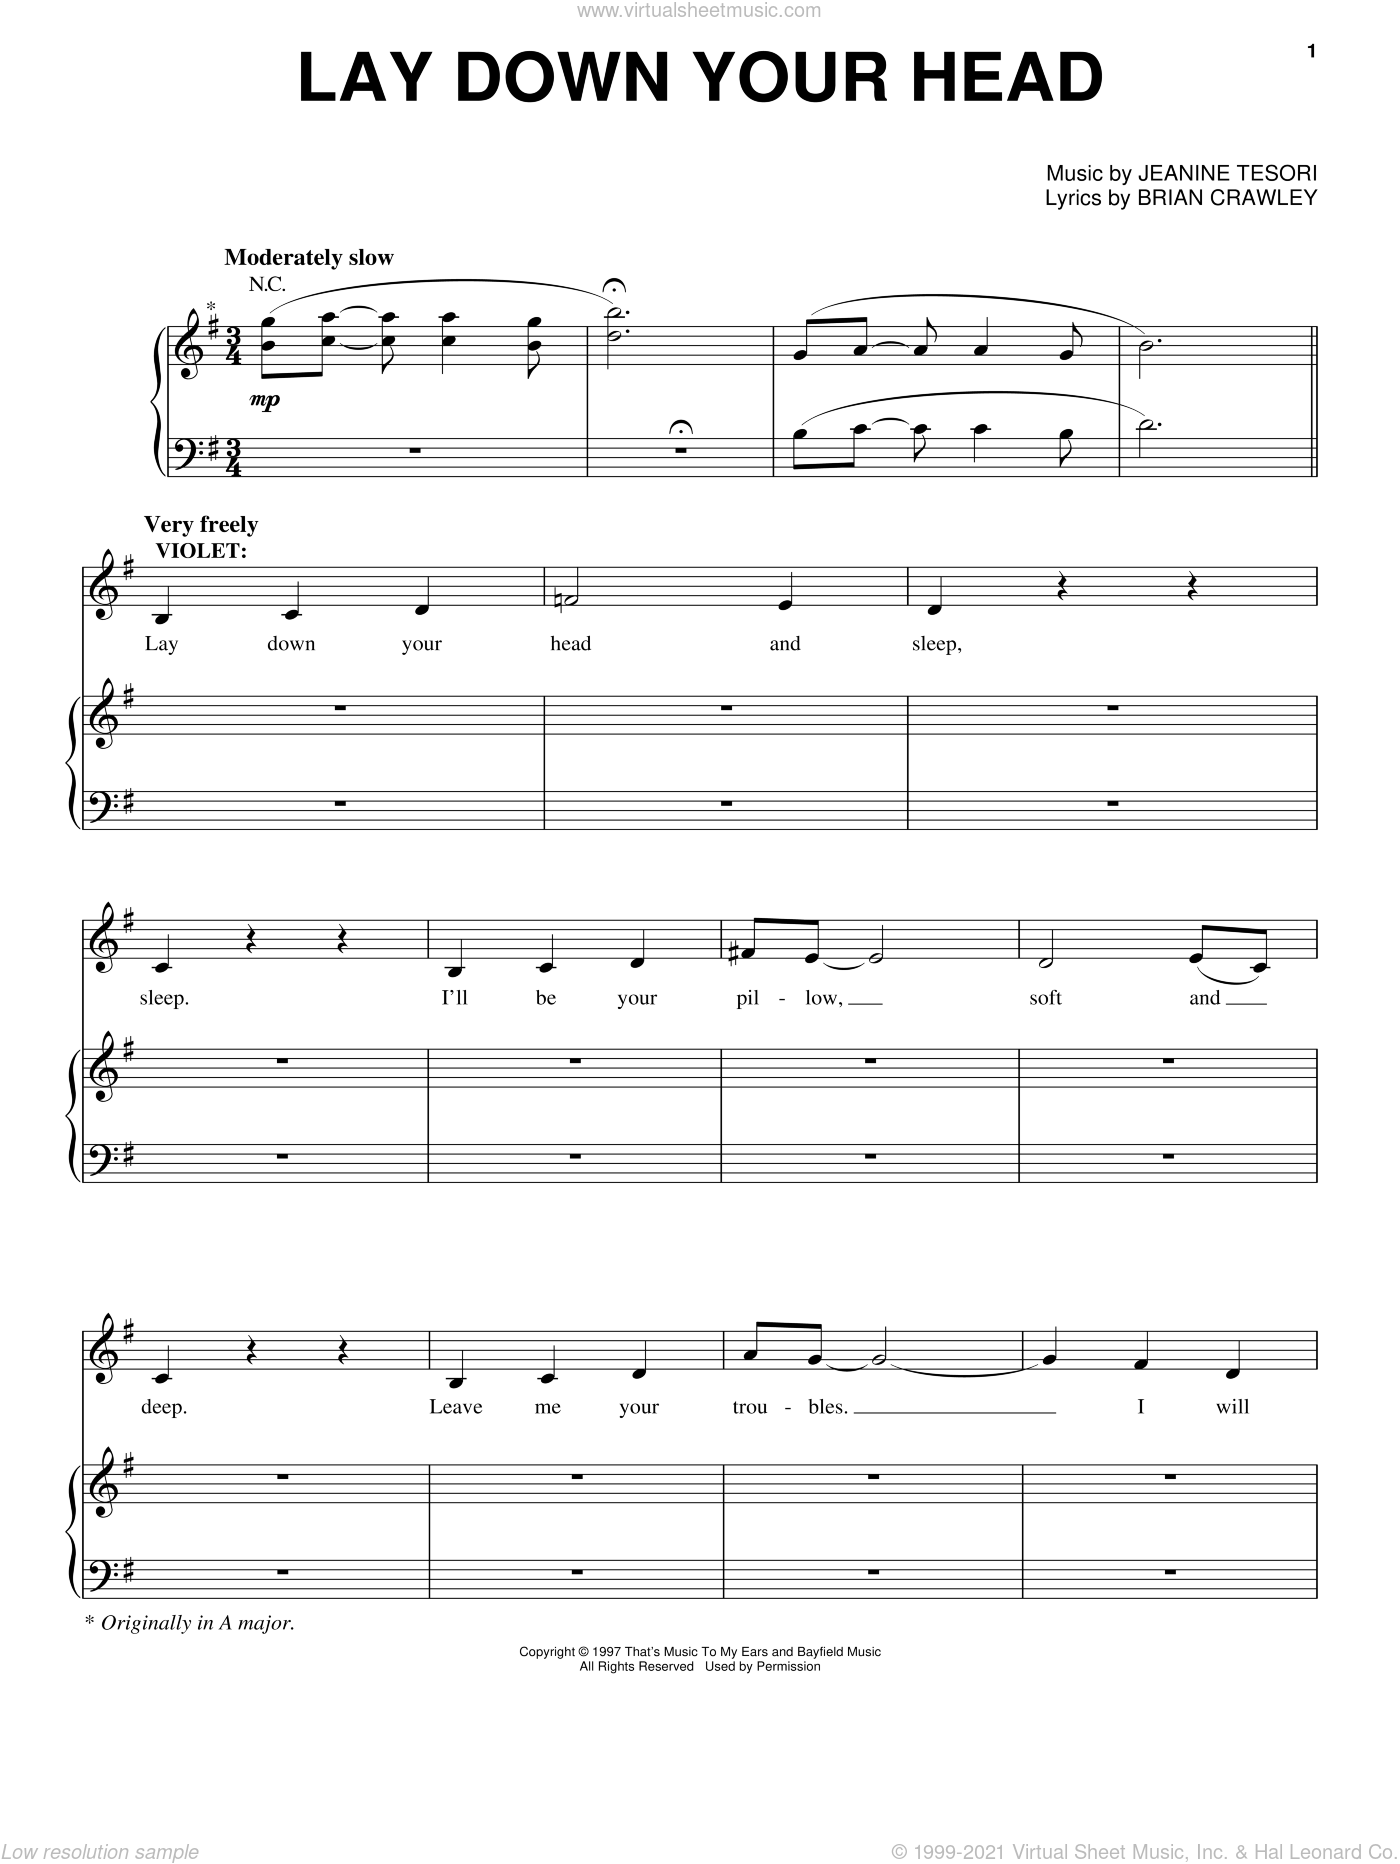 Lay Down Your Head sheet music for voice and piano by Jeanine Tesori, Audra McDonald and Brian Crawley, intermediate